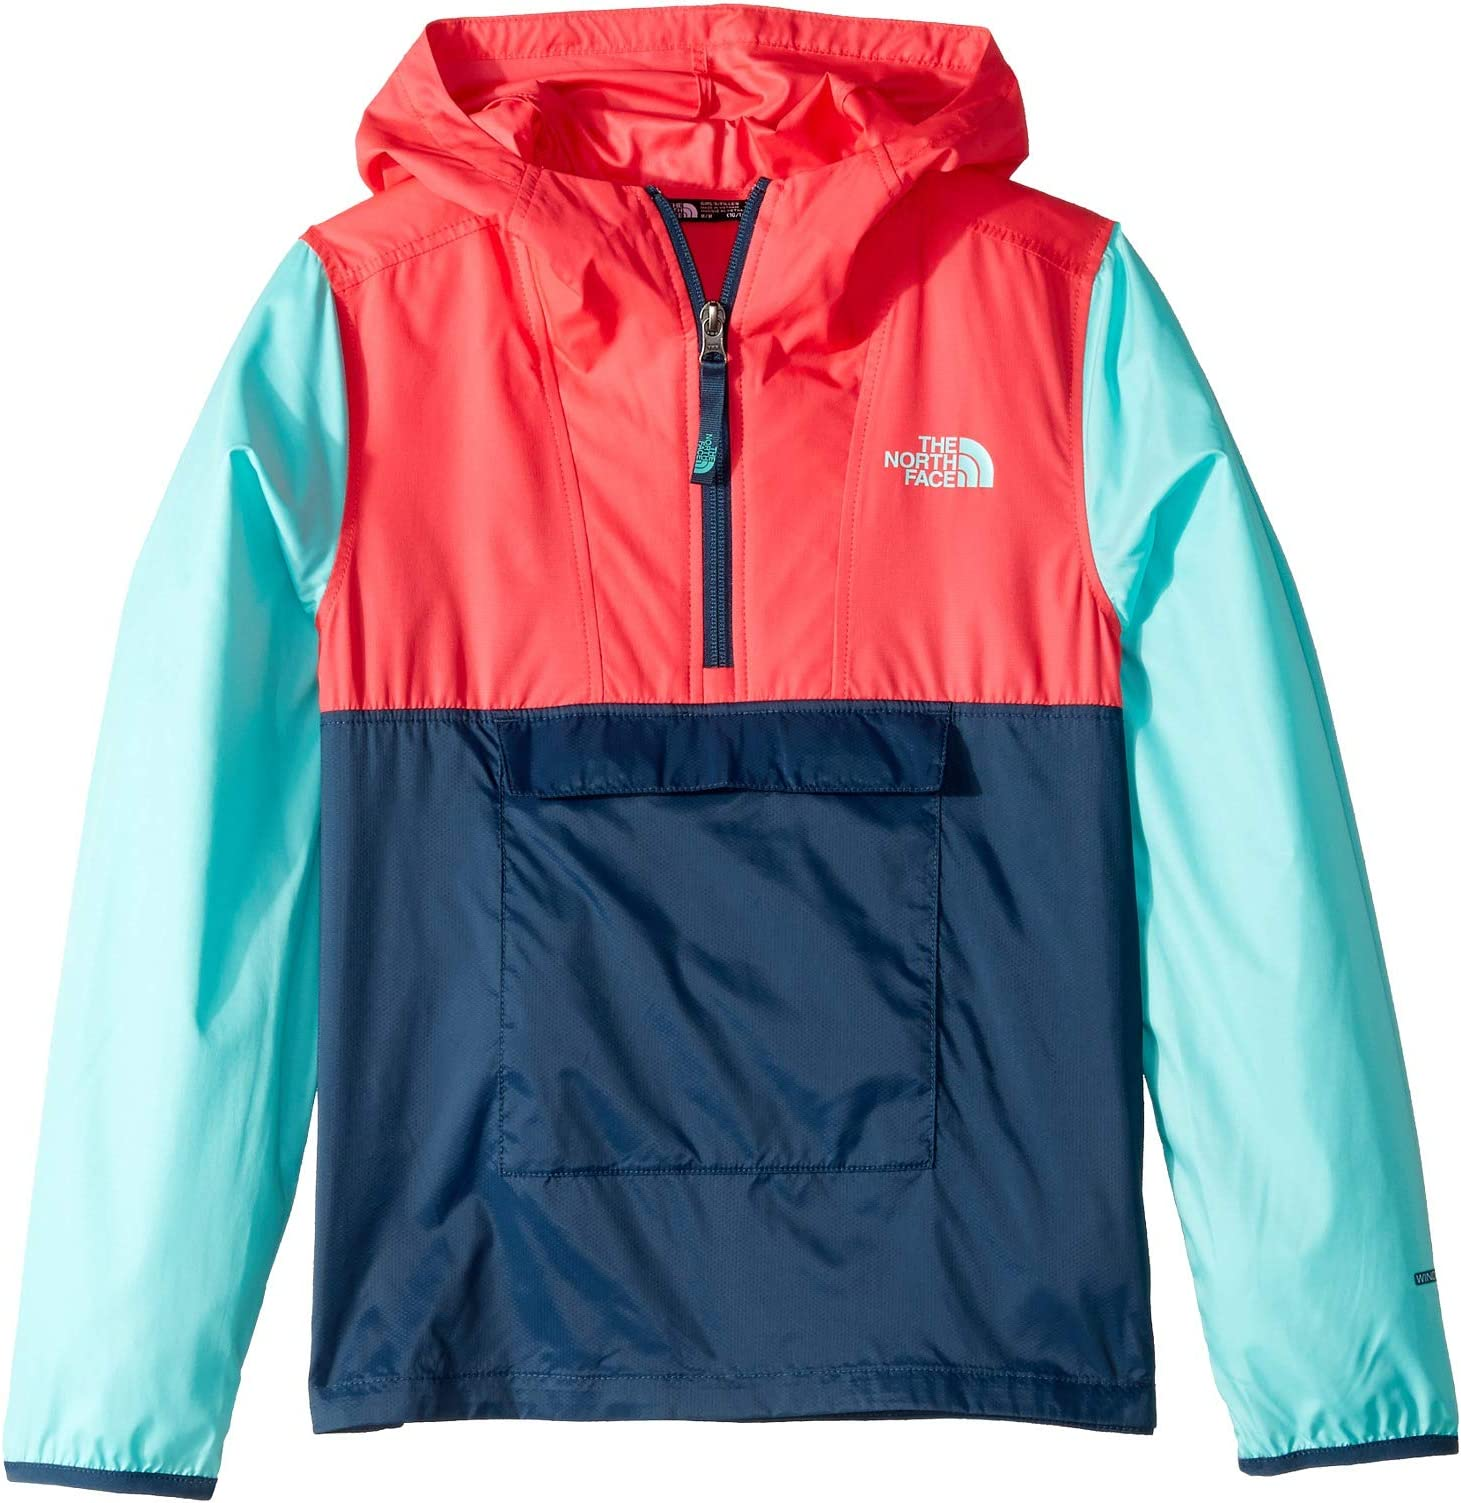 c6ceacf83 The North Face Outerwear, Shoes, Bags, Clothing | Zappos.com